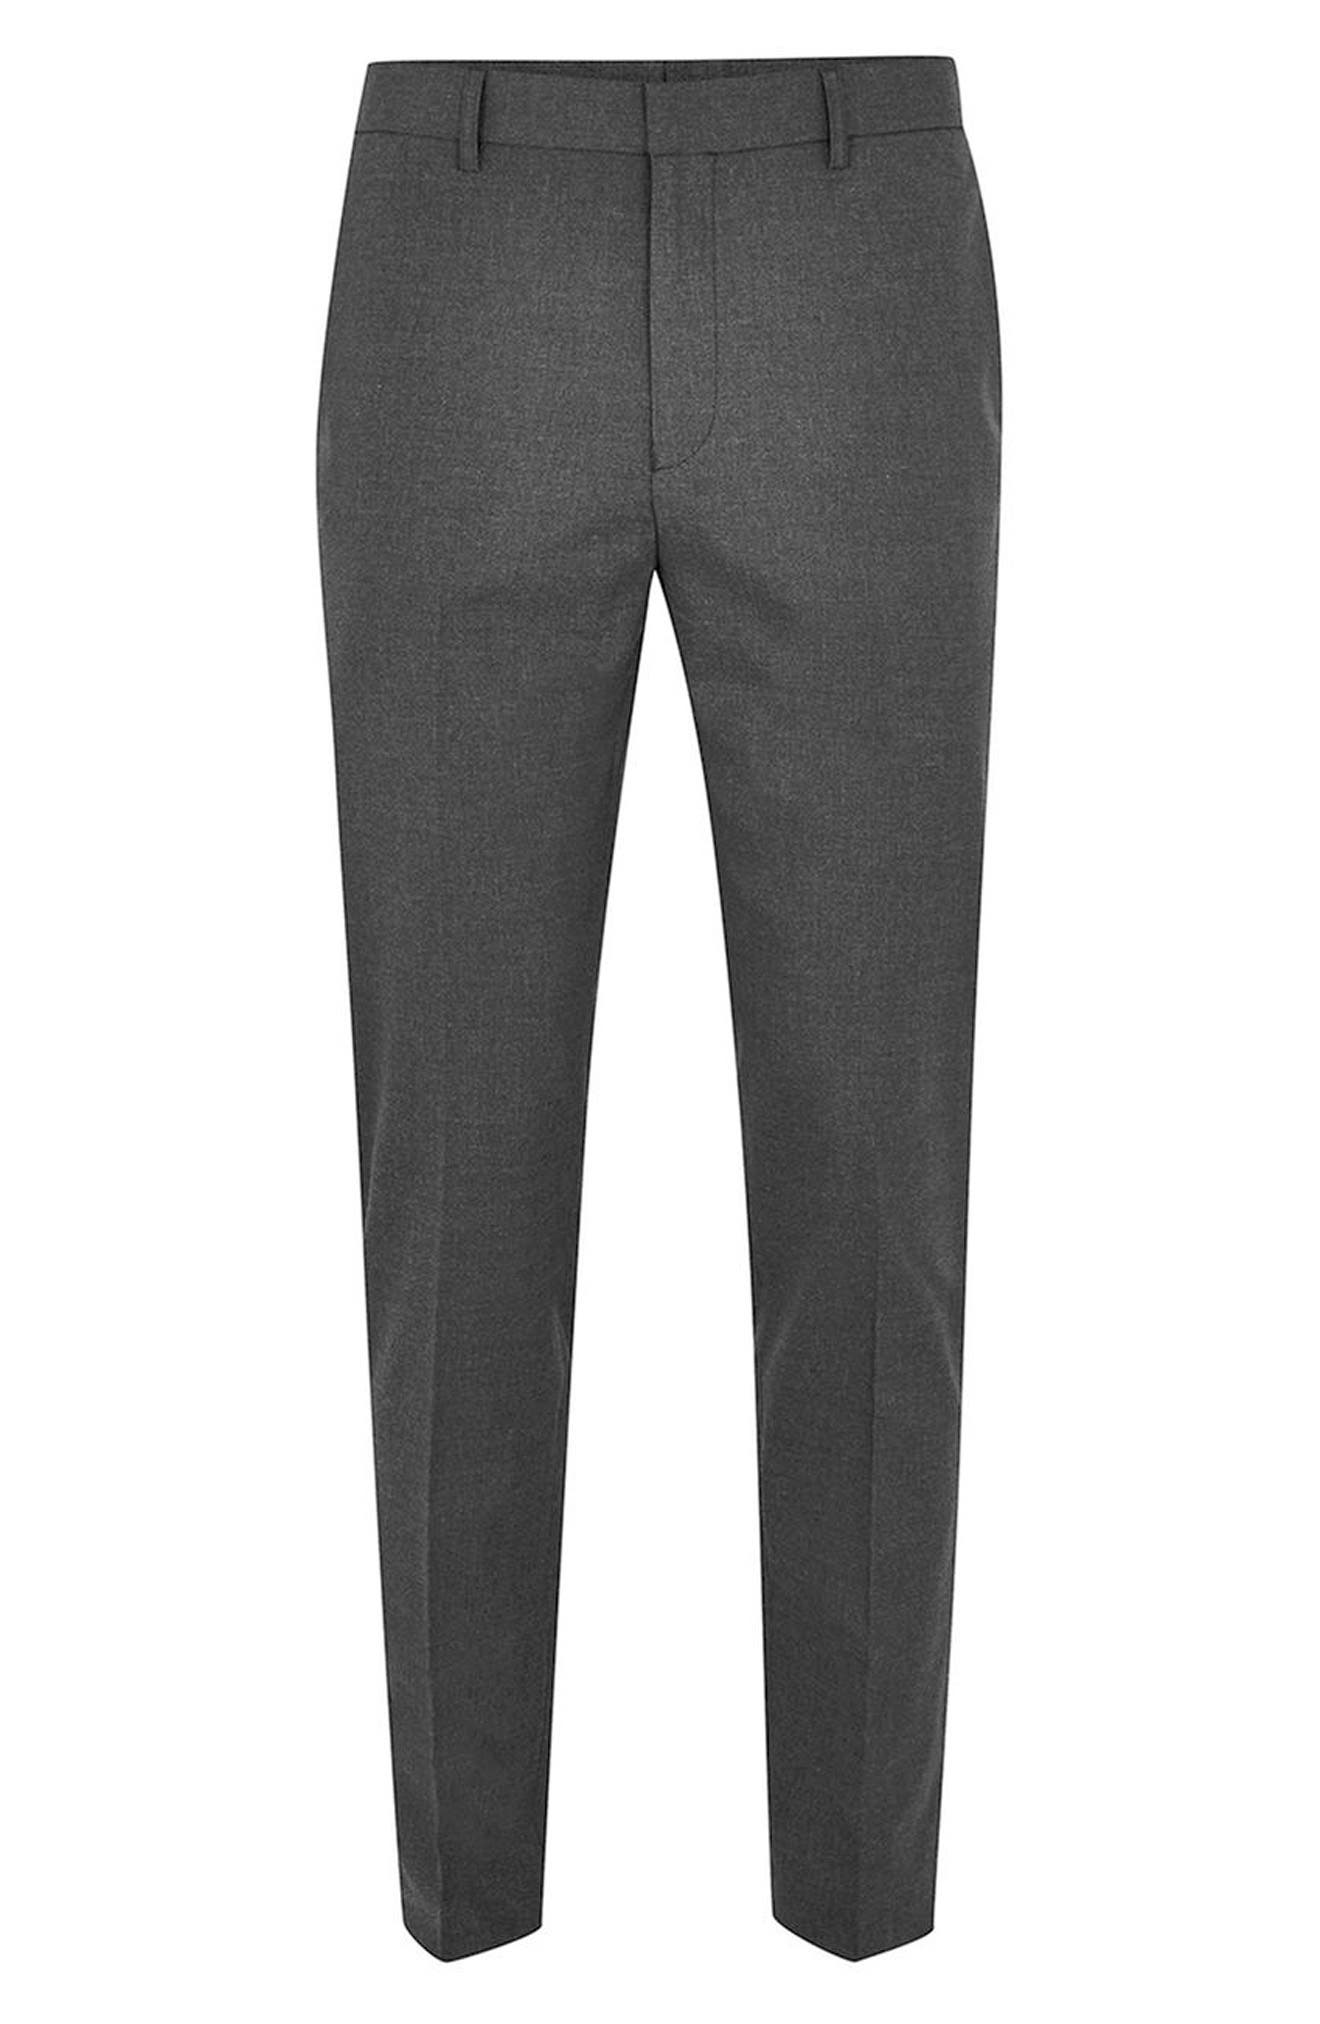 Skinny Fit Trousers,                             Alternate thumbnail 4, color,                             021